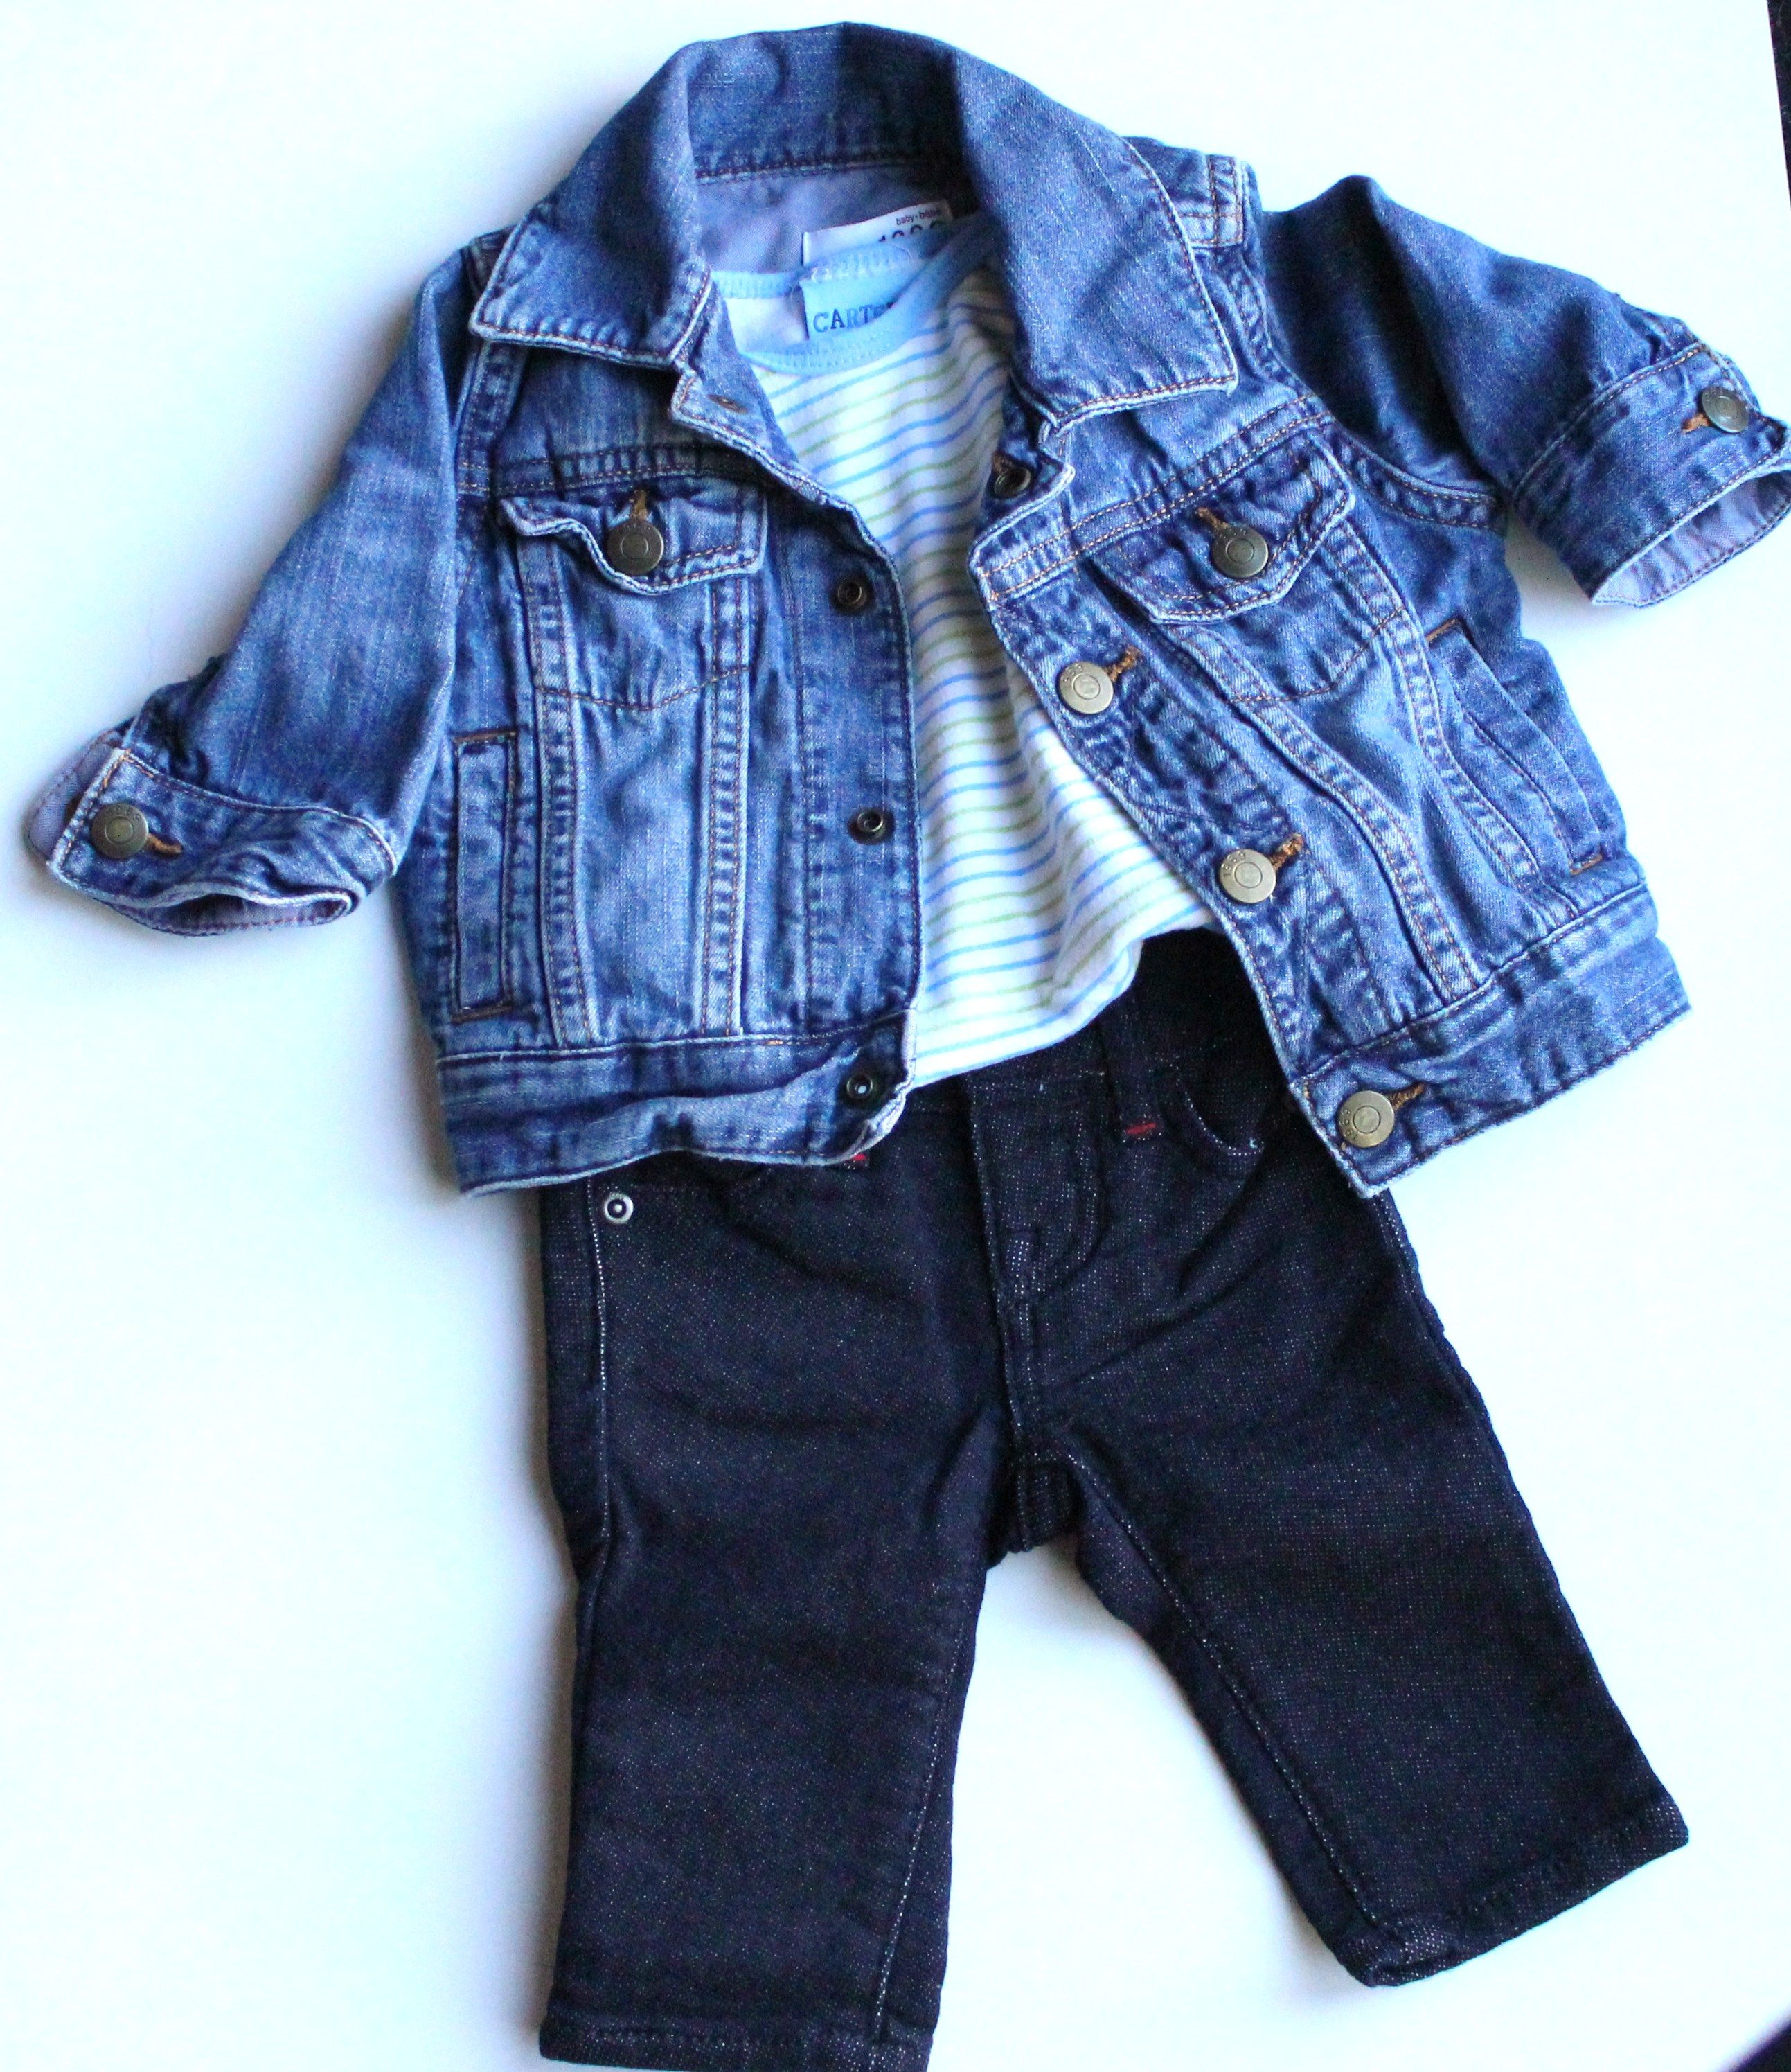 Classic Baby Boy Outfit Denim Jacket and Jeans by Baby Gap All